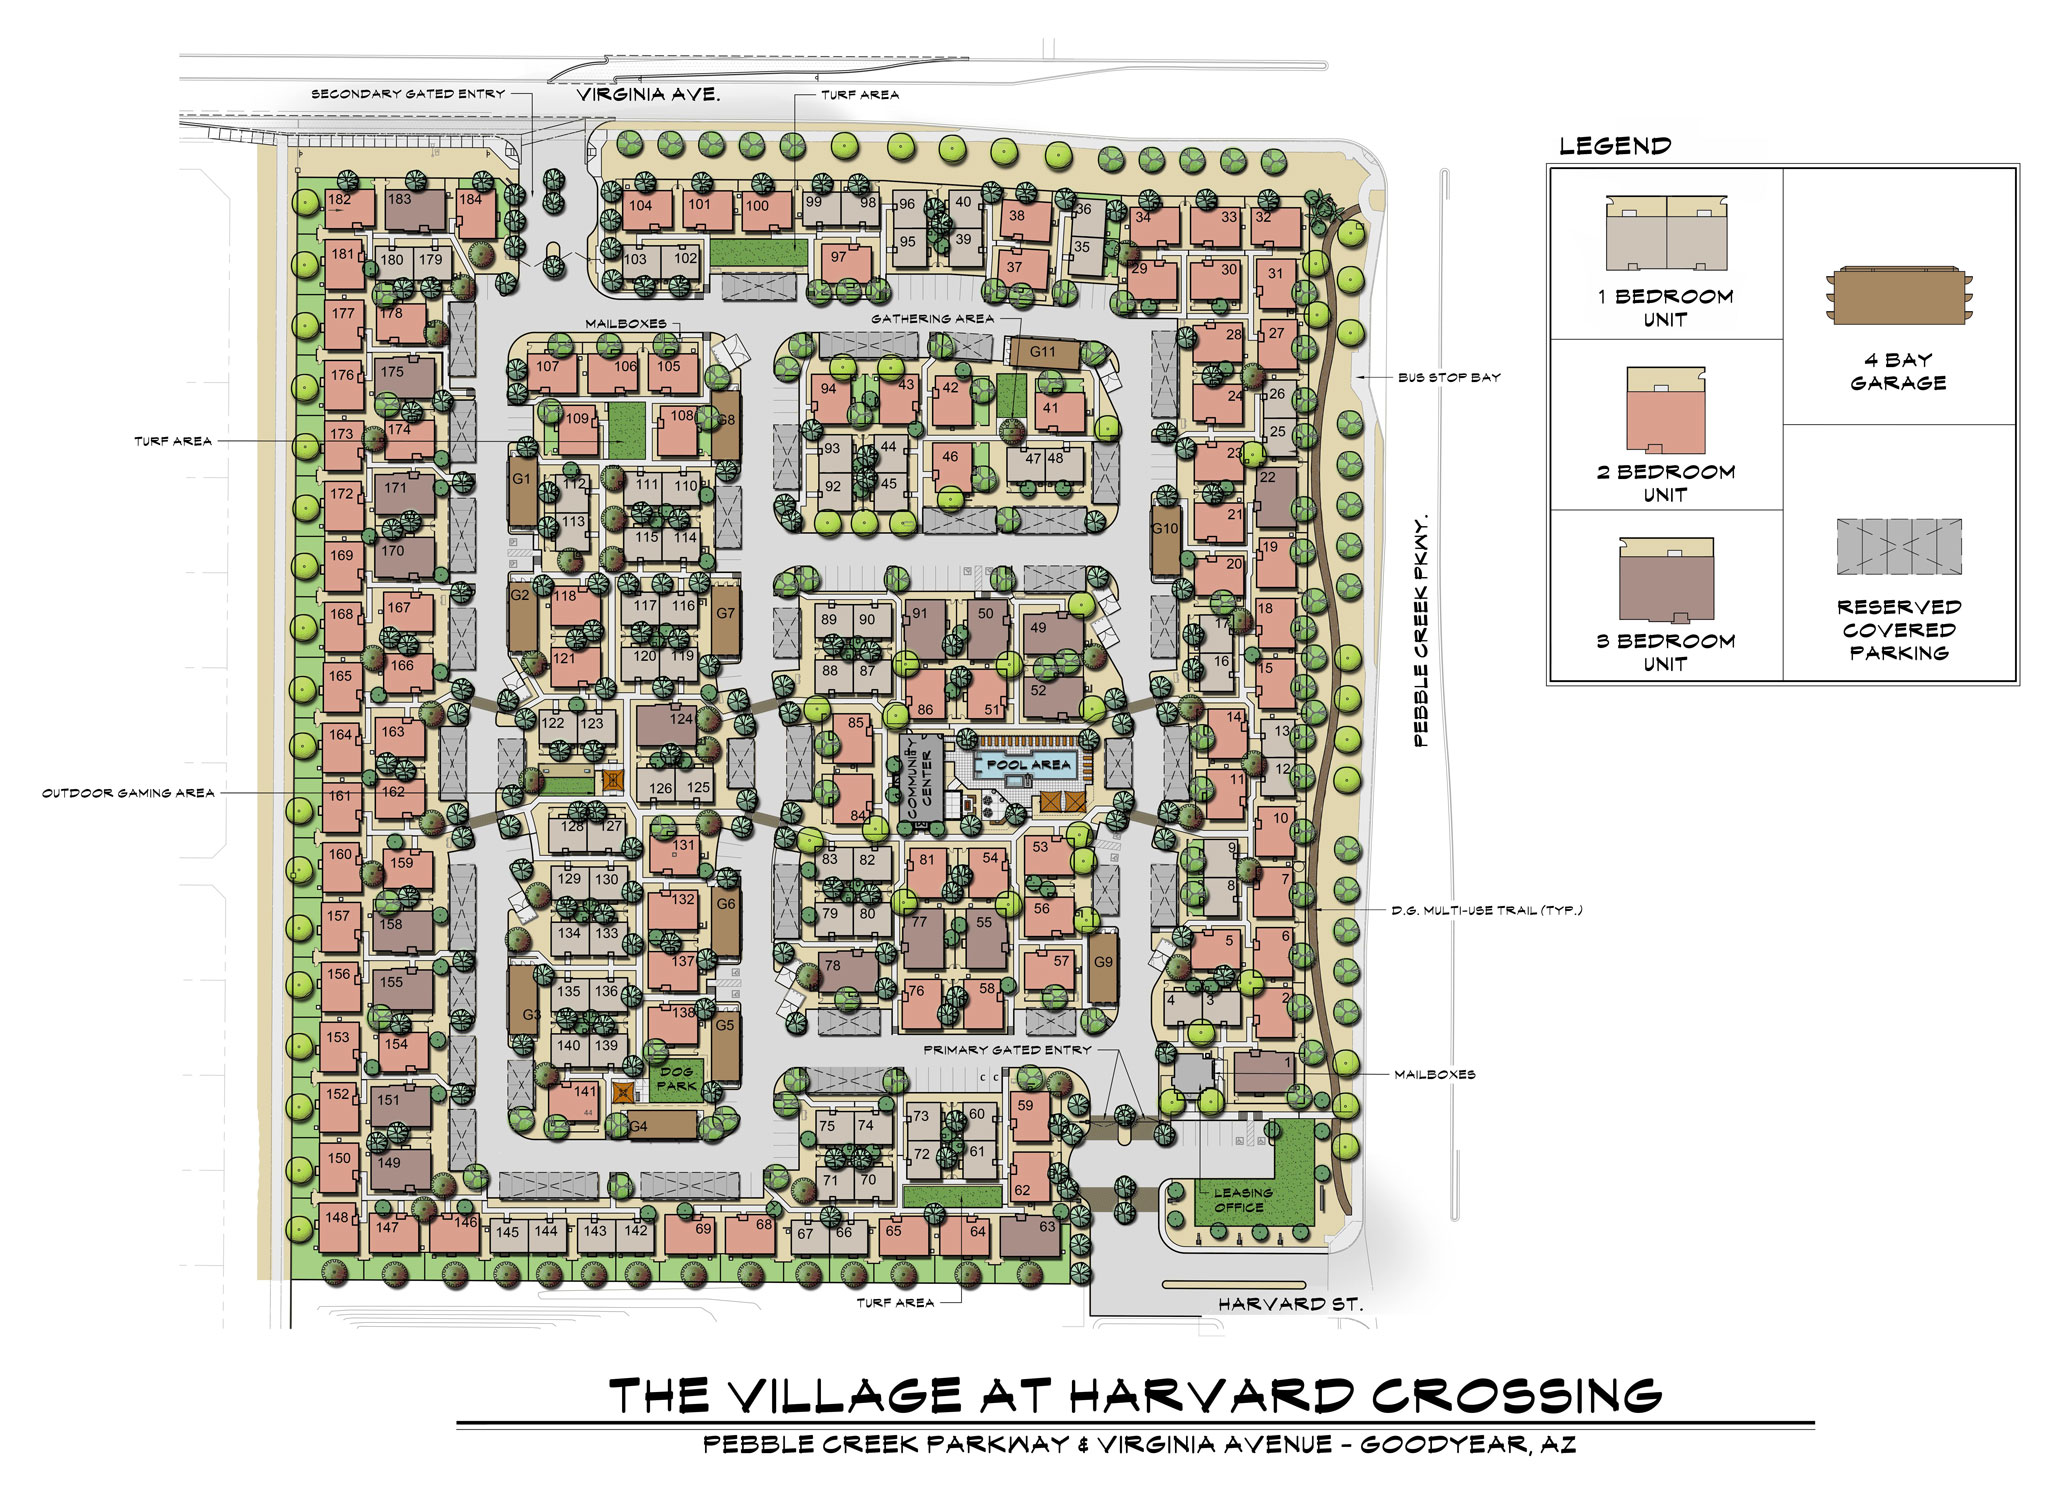 Site Plan for Village at Harvard Crossing Apartments in Goodyear, AZ